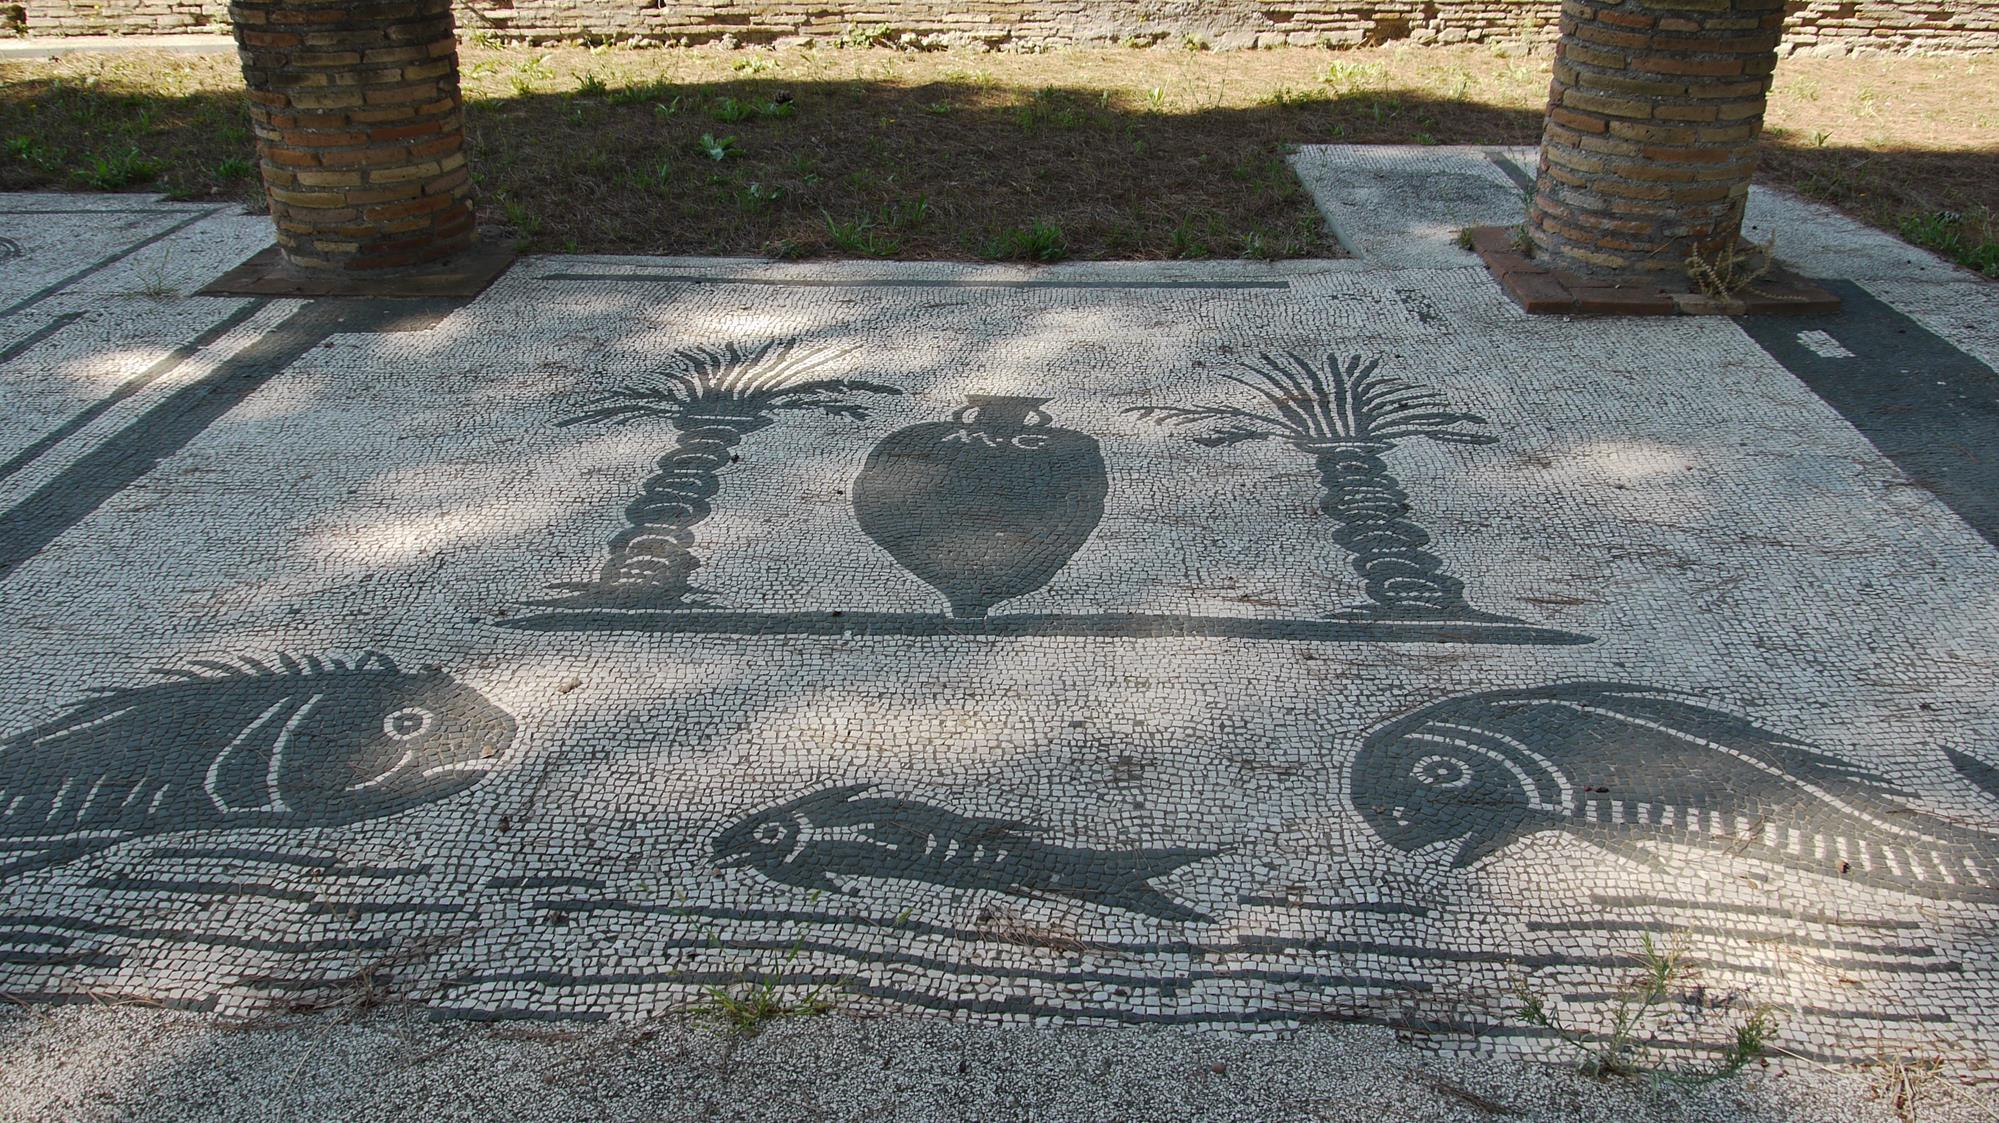 Mosaics in the Ostia Antica market advertised the stall owners' wares (fish sauce perhaps?)